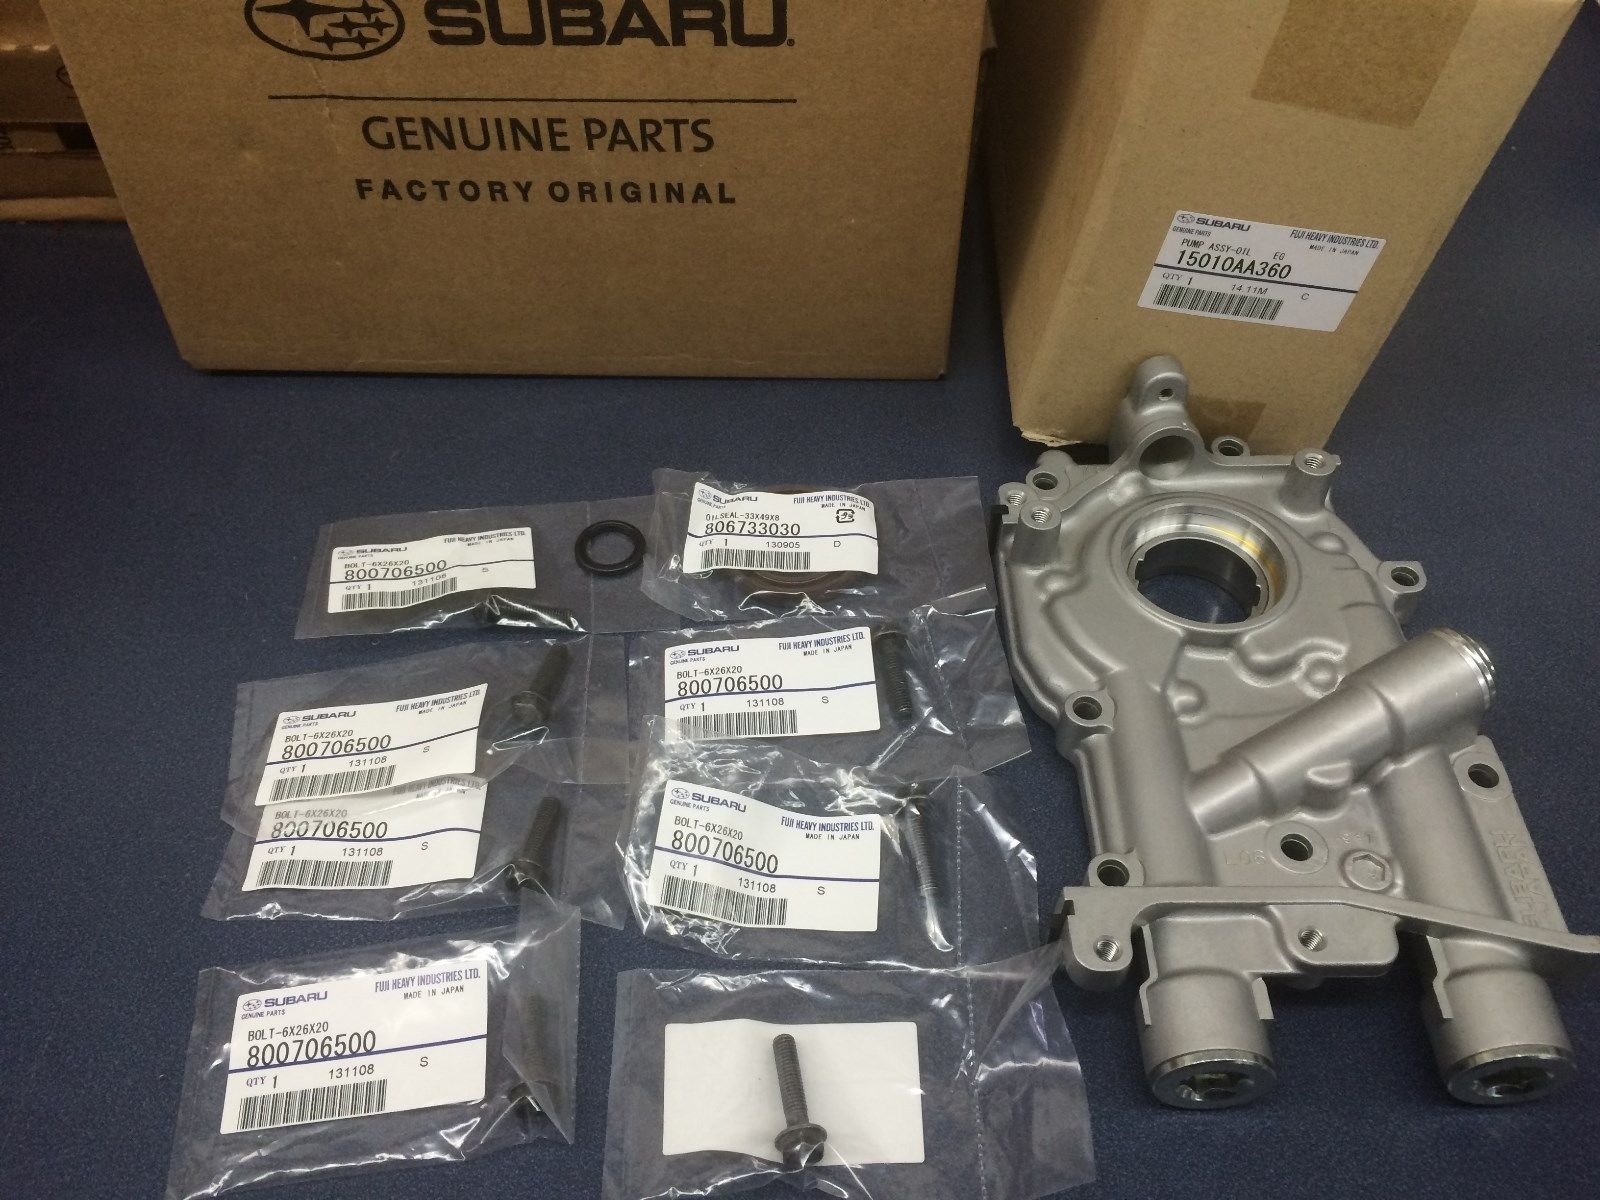 Genuine Subaru 11mm 2.5L Oil Pump w/ Bolts & Seals WRX STi Turbo Oem IMPREZA LEGACY OUTBACK 2008-2015 by Subaru